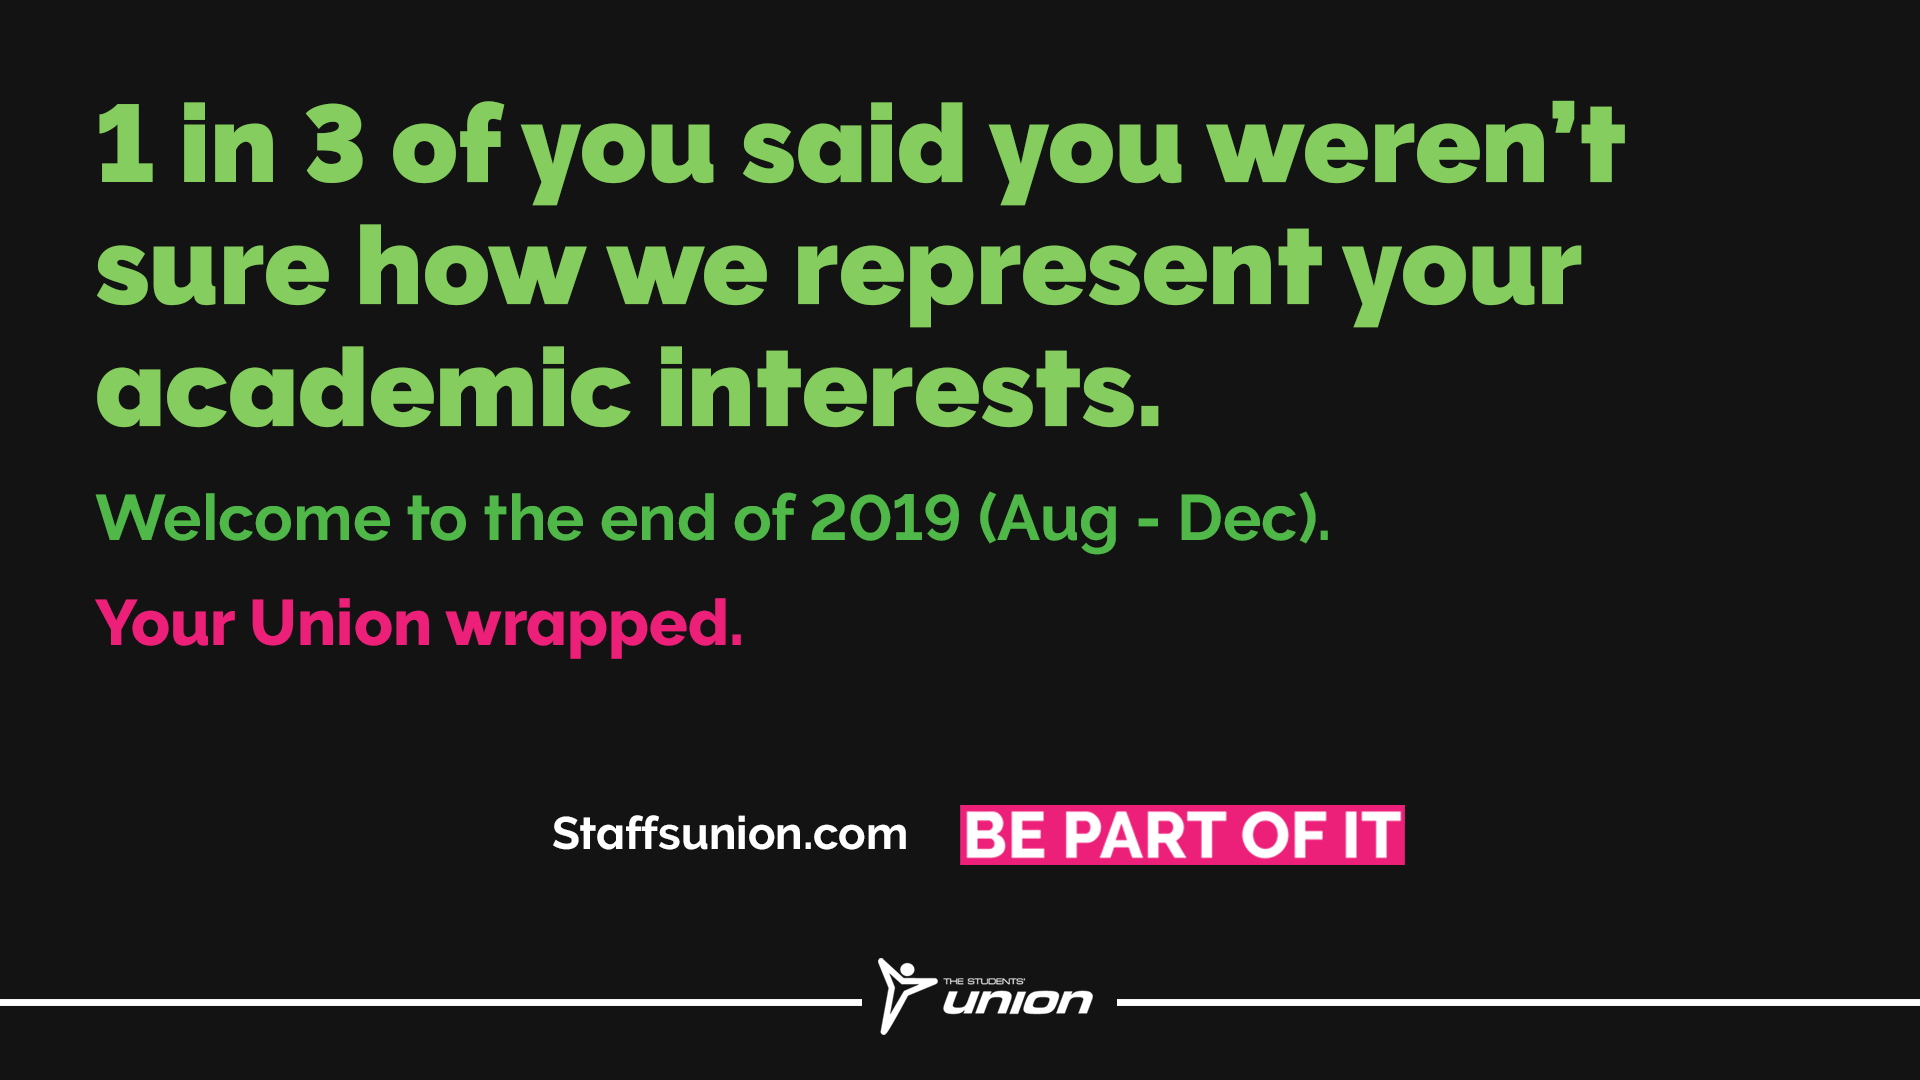 1 in 3 of you said you weren't sure how we represent your academic interests. Welcome to the end of 2019 (Aug - Dec). Your Union Wrapped.